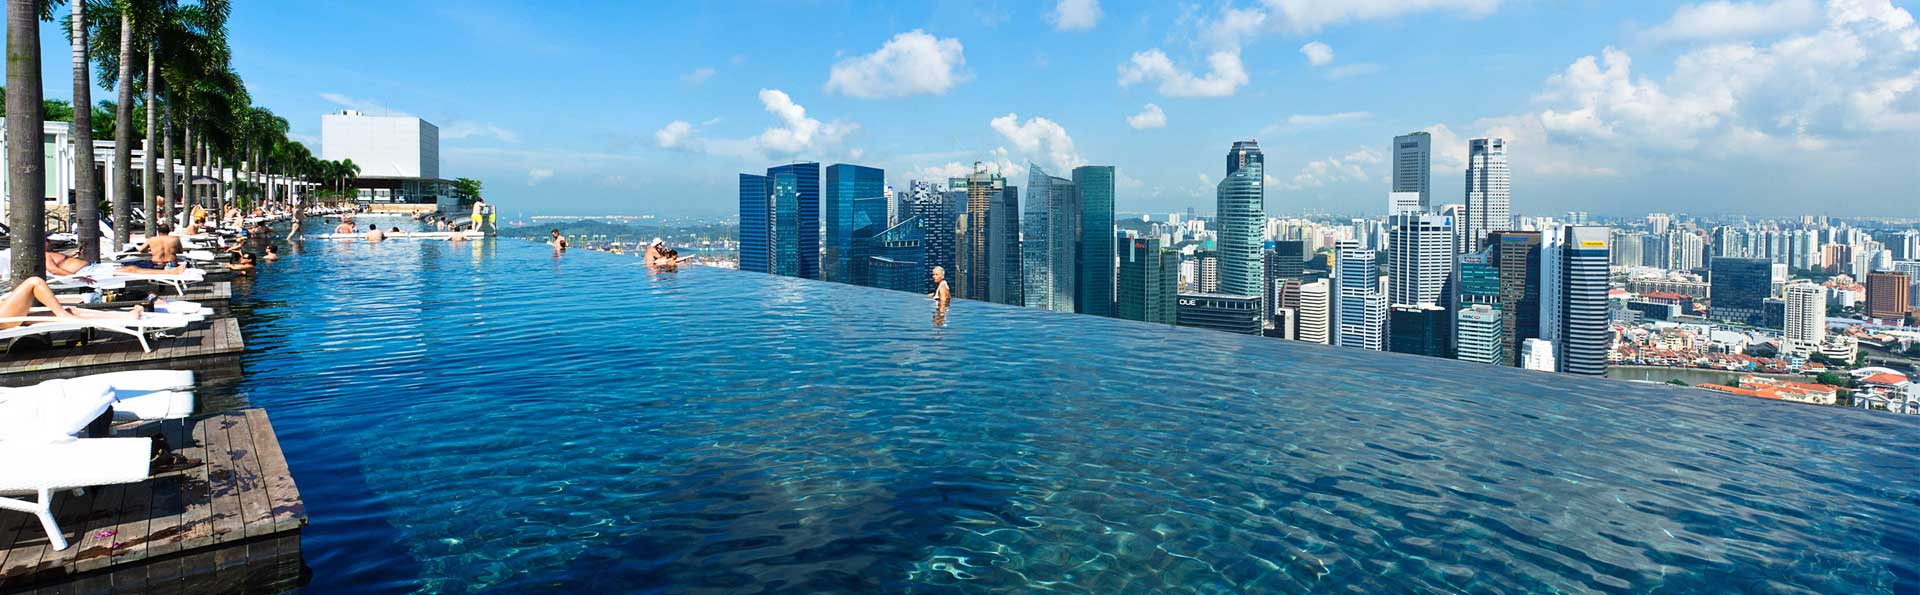 design hotels : top 5 of breathtaking hotel pools of the world!